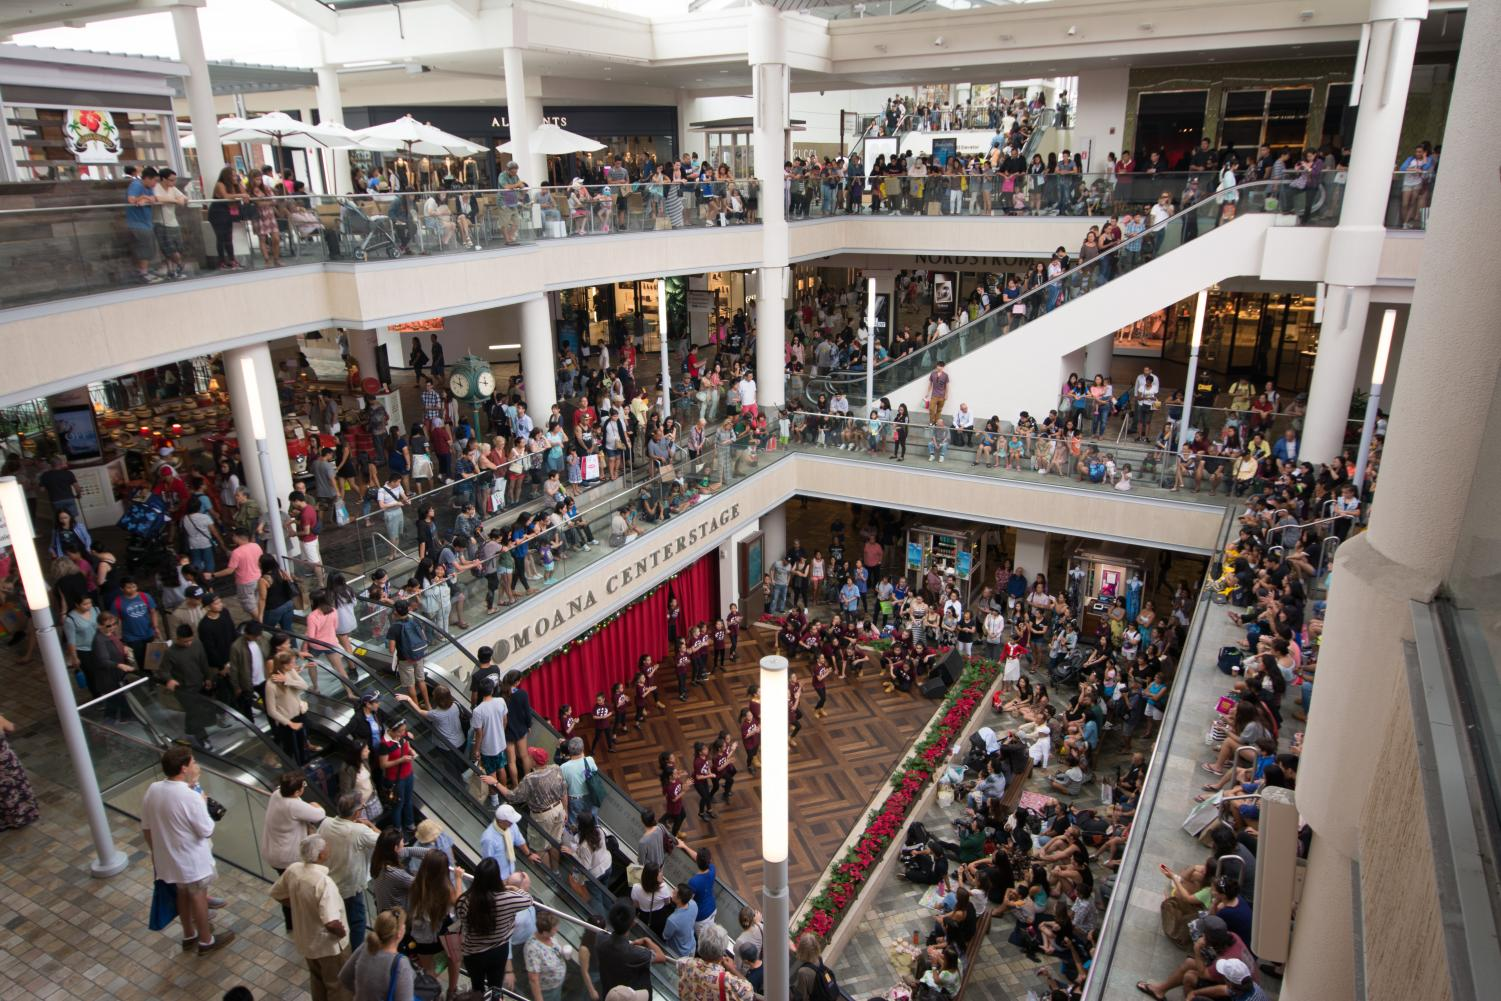 People crowd the mall in attempts to get the most out of Black Friday Sales. Photo by Flikr Creative Commons